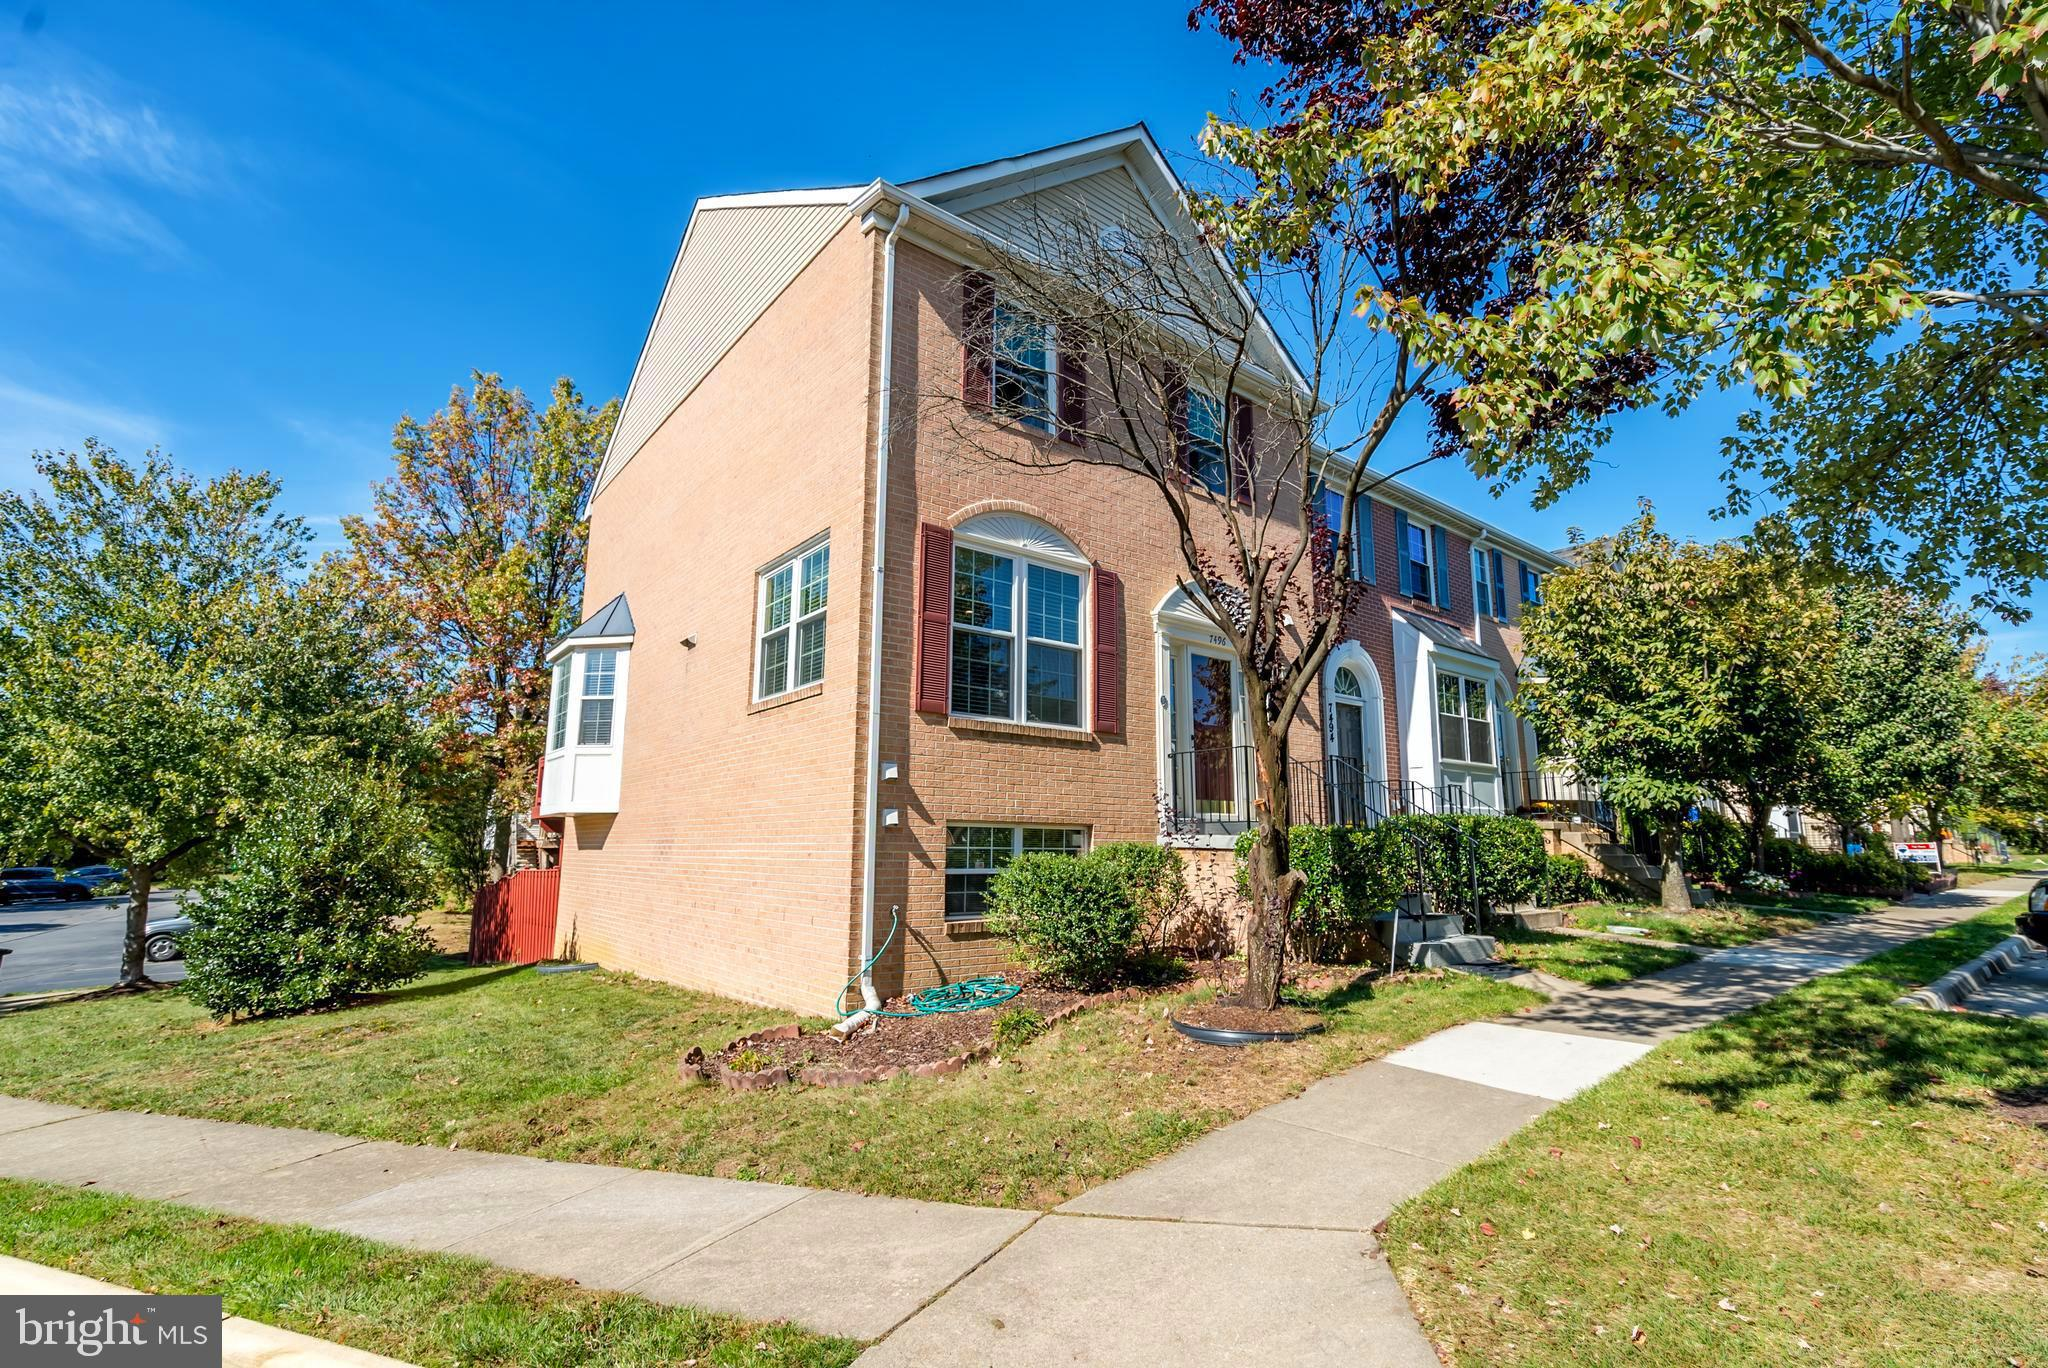 OPEN SUNDAY 1-4 .3 BR / 3.5 BA END UNIT TOWN HOME IN KINGSTOWNE! WINDOWS,  HVAC ,DISHWASHER AND  HARDWOODS INSTALLED LATE 2016.FLOOR PLAN FEATURES FORMAL DINING ROOM, EAT-IN KITCHEN, MASTER BEDROOM W/ EN-SUITE BATH & WALK-OUT LL! UPGRADES INCLUDE: CROWN MOLDING/TRIM, CHAIR RAILING, GRANITE,VAULTED CEILINGS W/ SKYLIGHTS, GAS FP & MORE! LARGE DECK AND FENCED IN YARD: PREFECT FOR ENTERTAINING! 2 ASSIGNED PARKING SPACES! PREMIER COMMUNITY AMENITIES & FANTASTIC LOCATION!